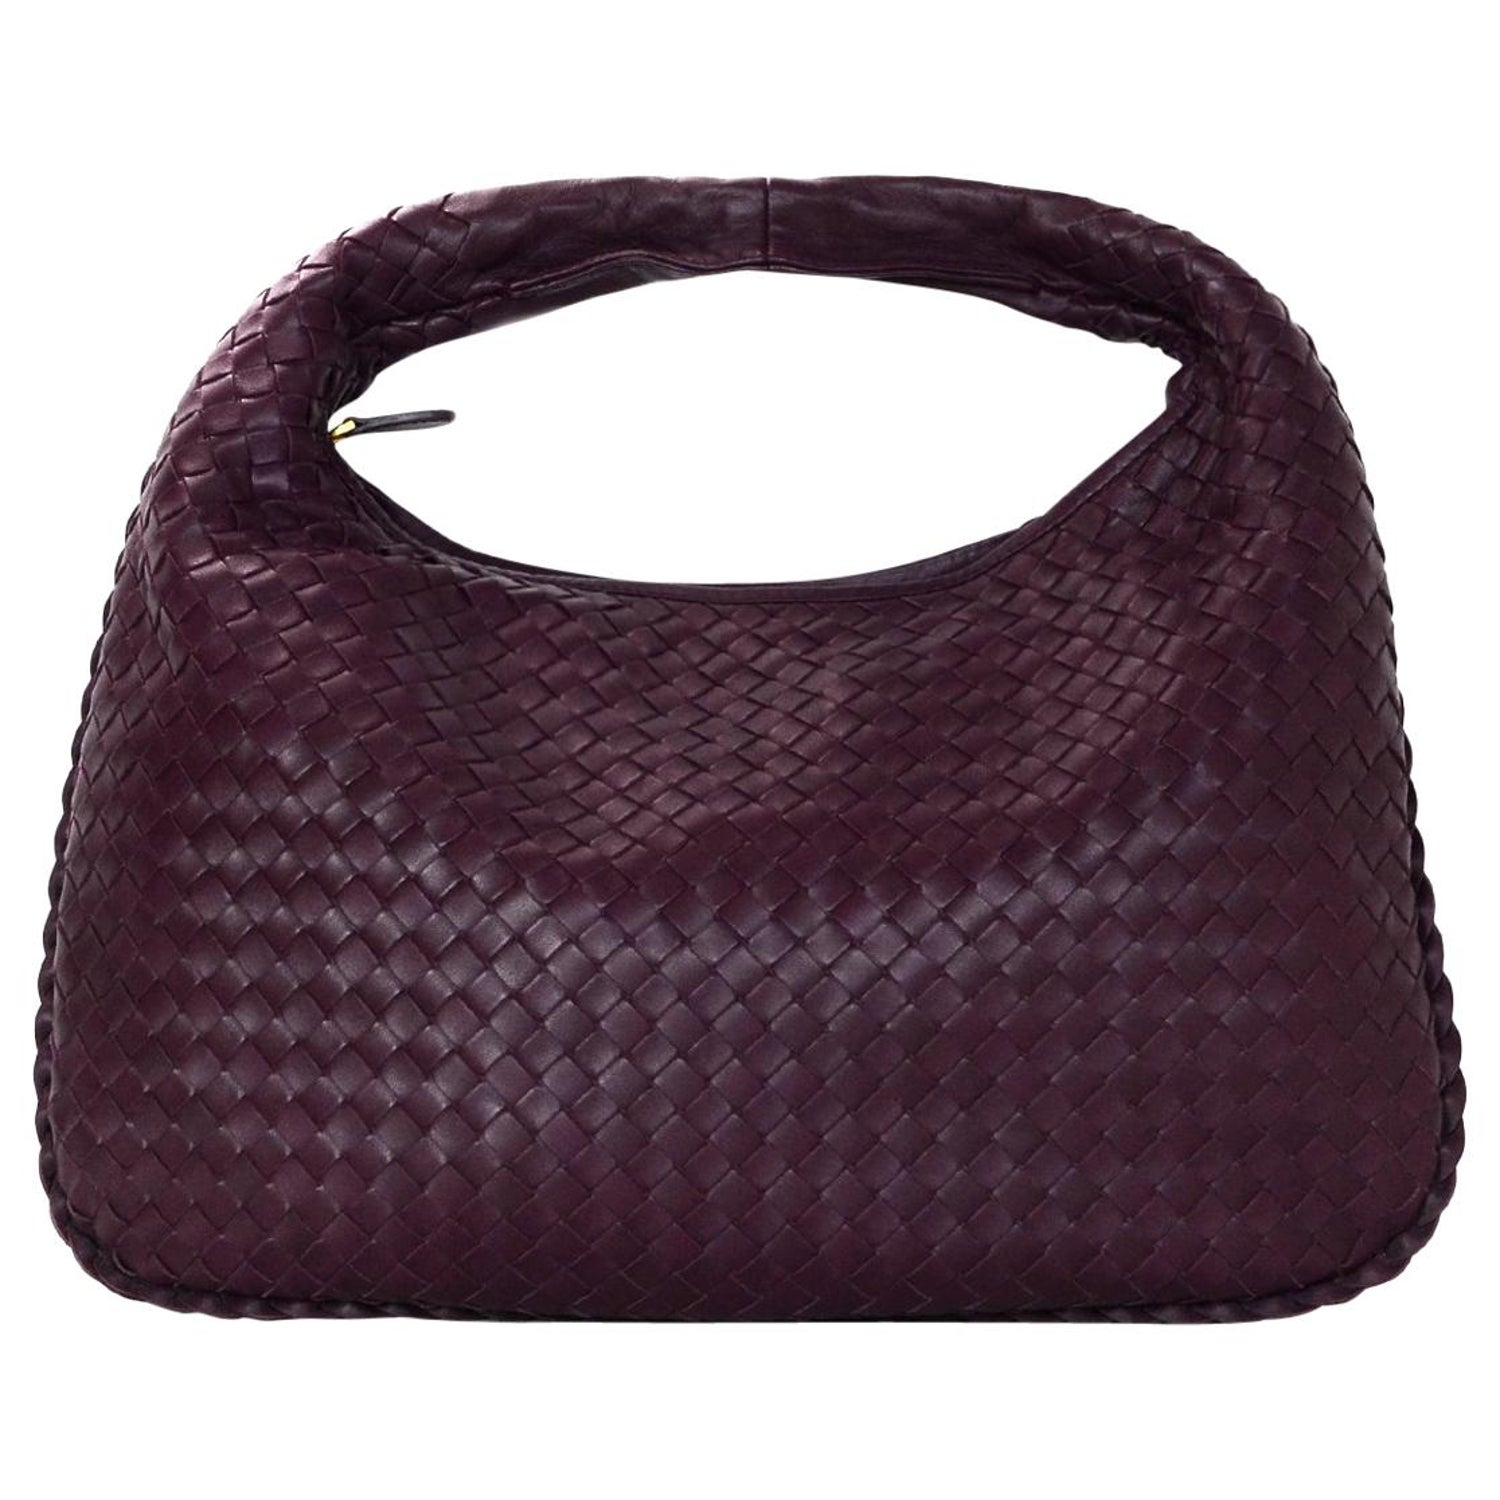 1182df6be236 Bottega Veneta Eggplant Purple Woven Nappa Intrecciato Medium Veneta Hobo  Bag For Sale at 1stdibs